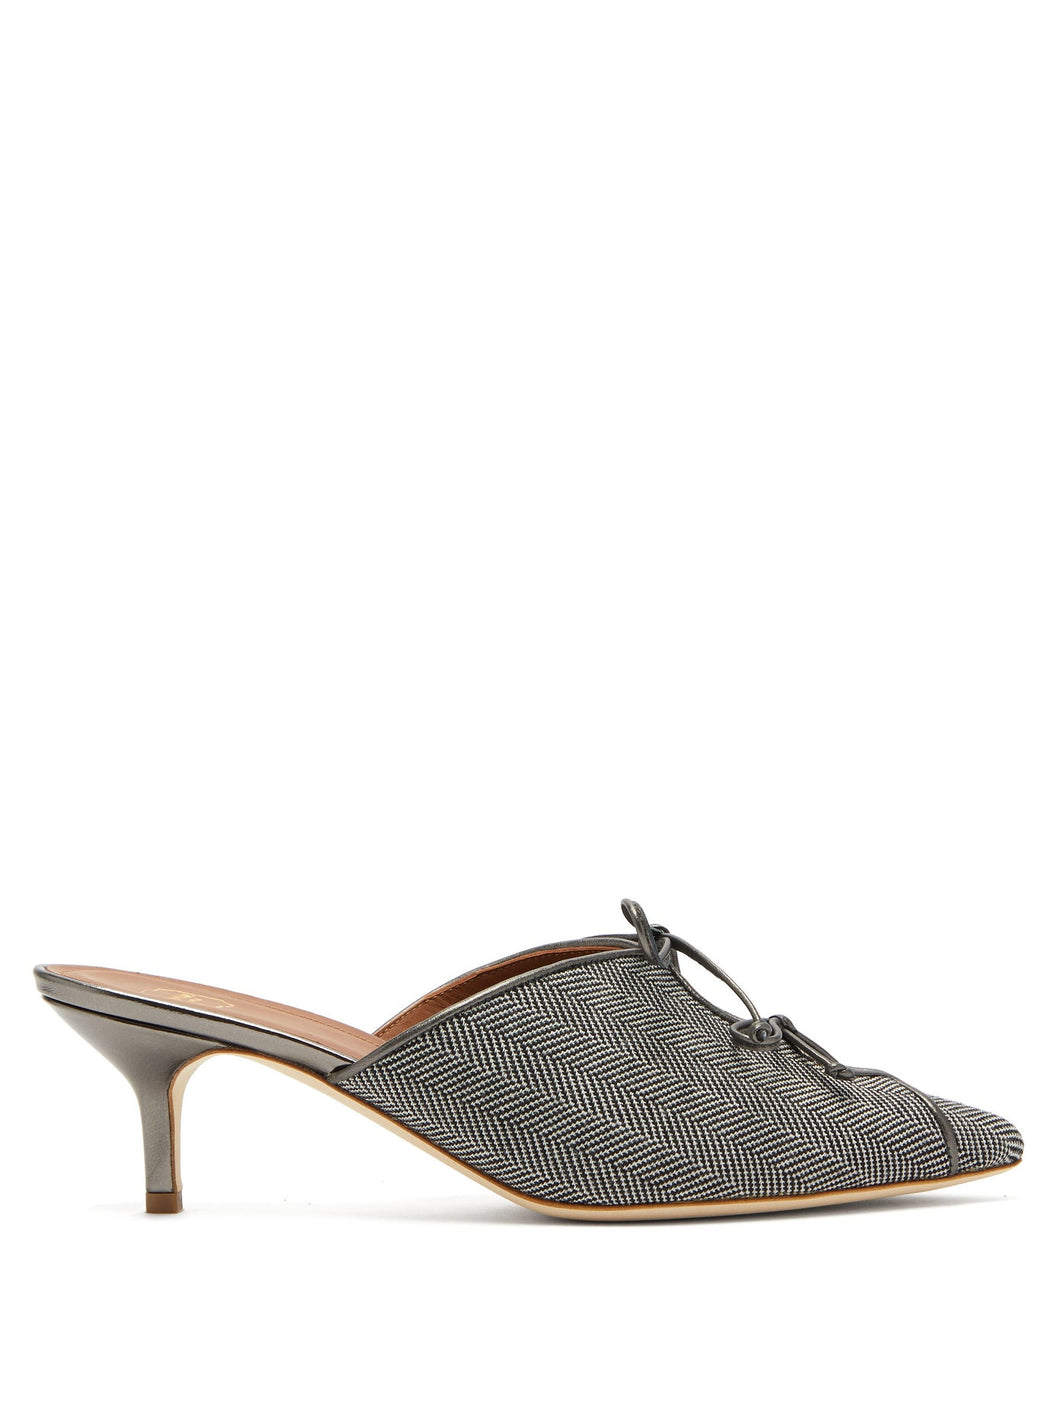 Victoria lace-up herringbone mules